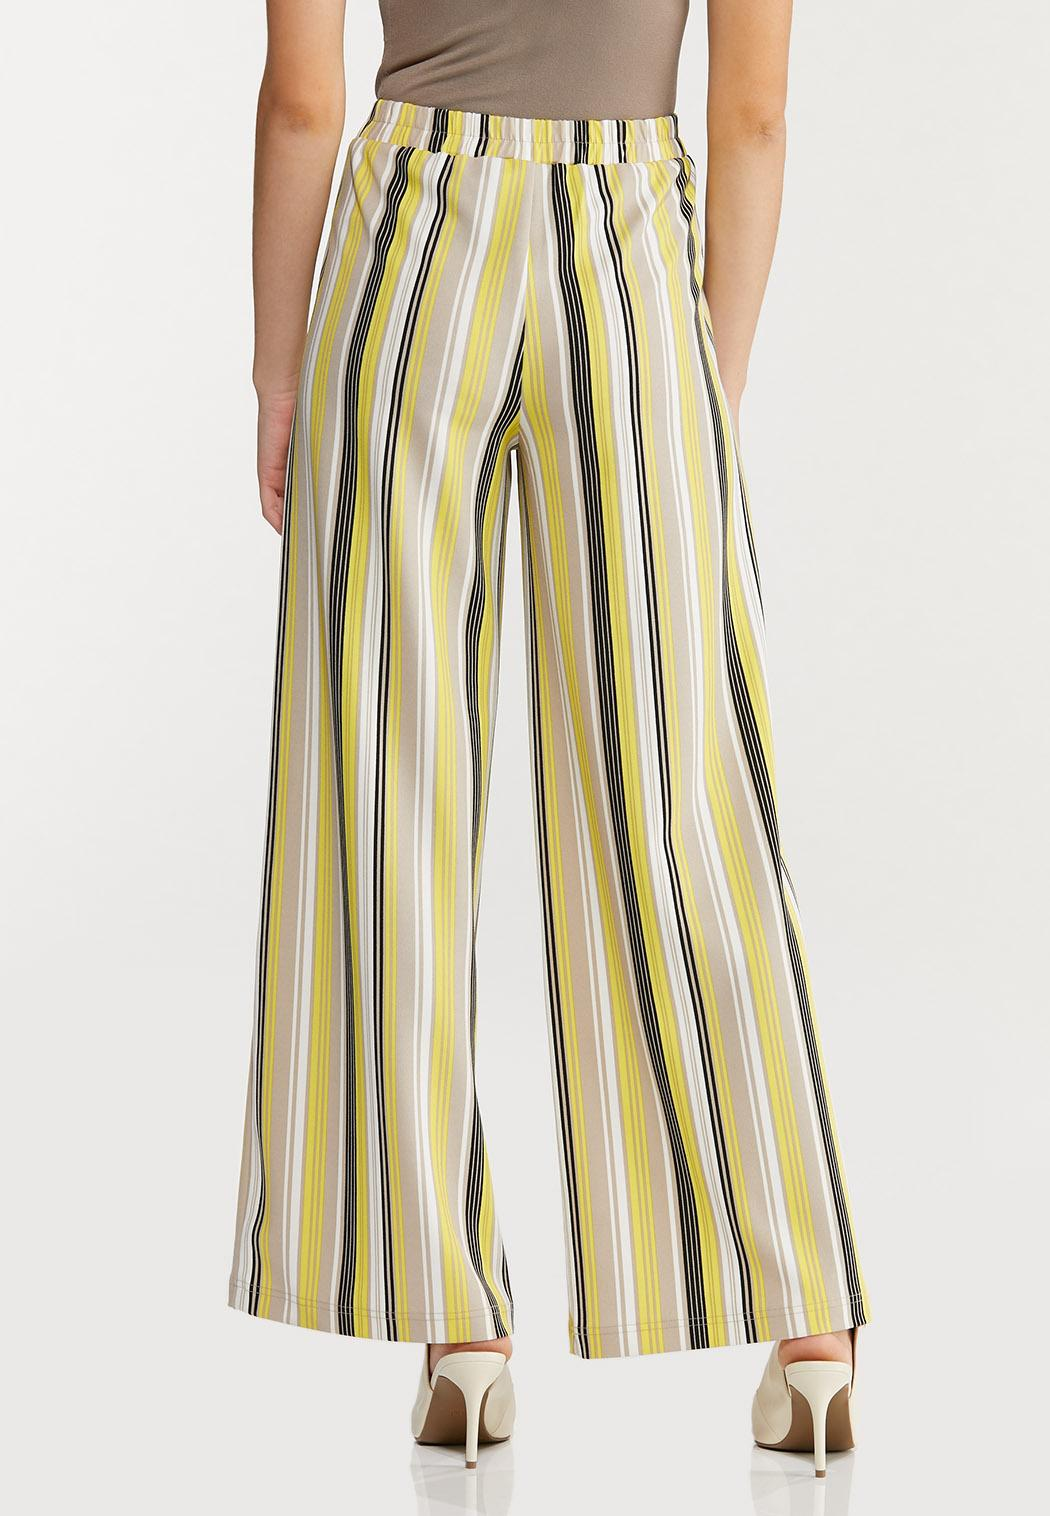 Petite Striped Palazzo Pants (Item #44468447)